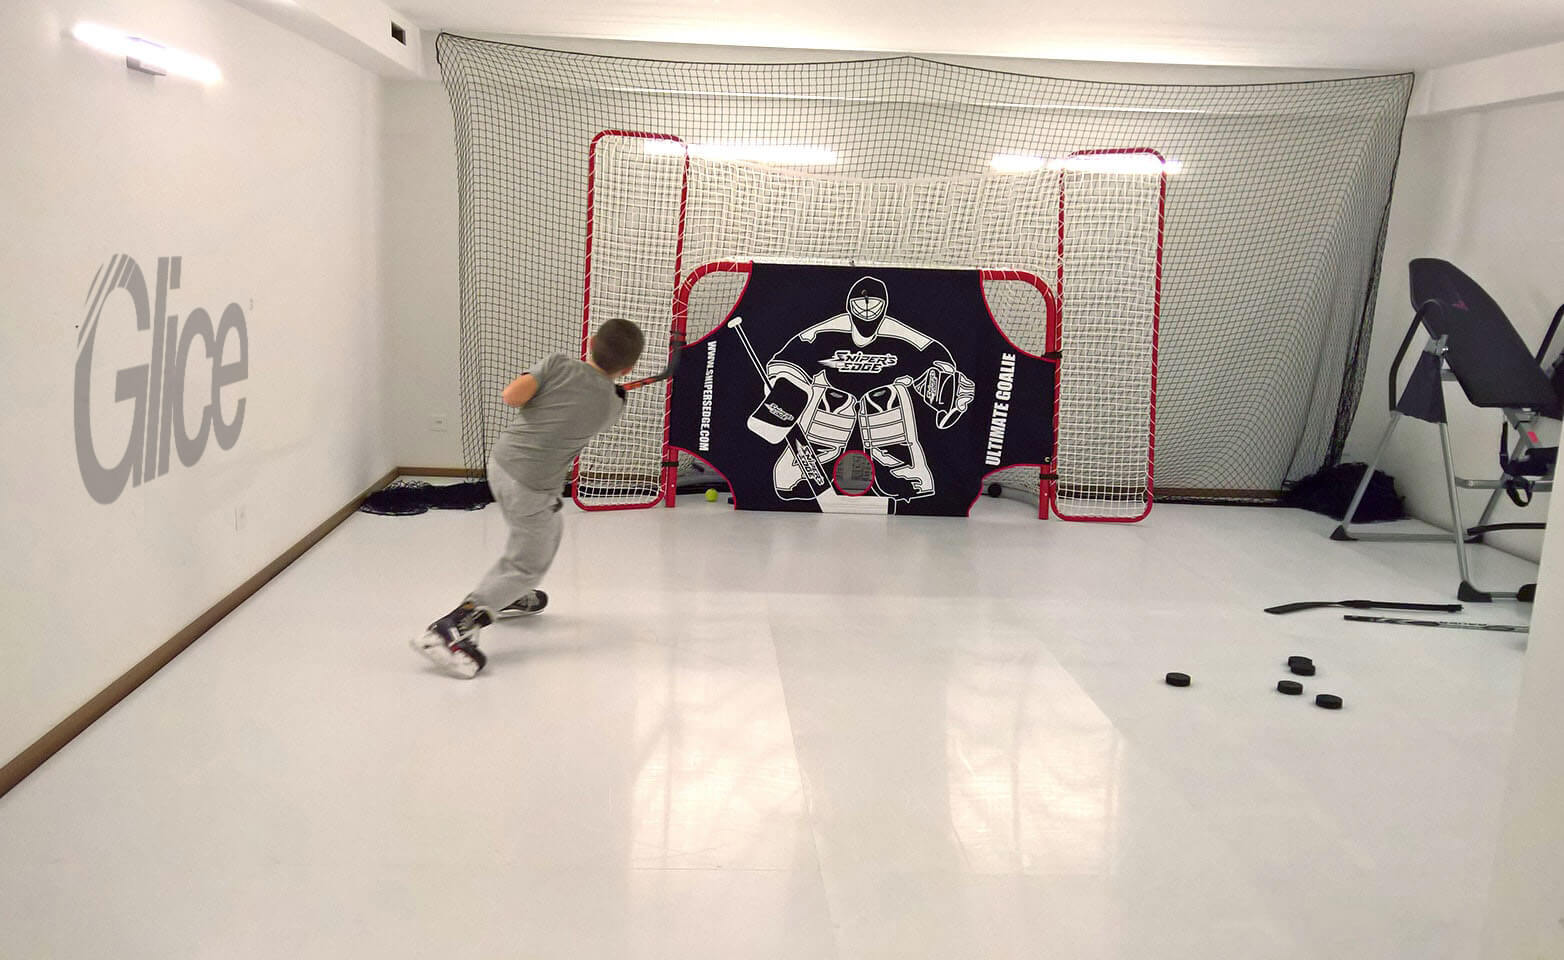 Kid practicing shooting on plastic ice sheet